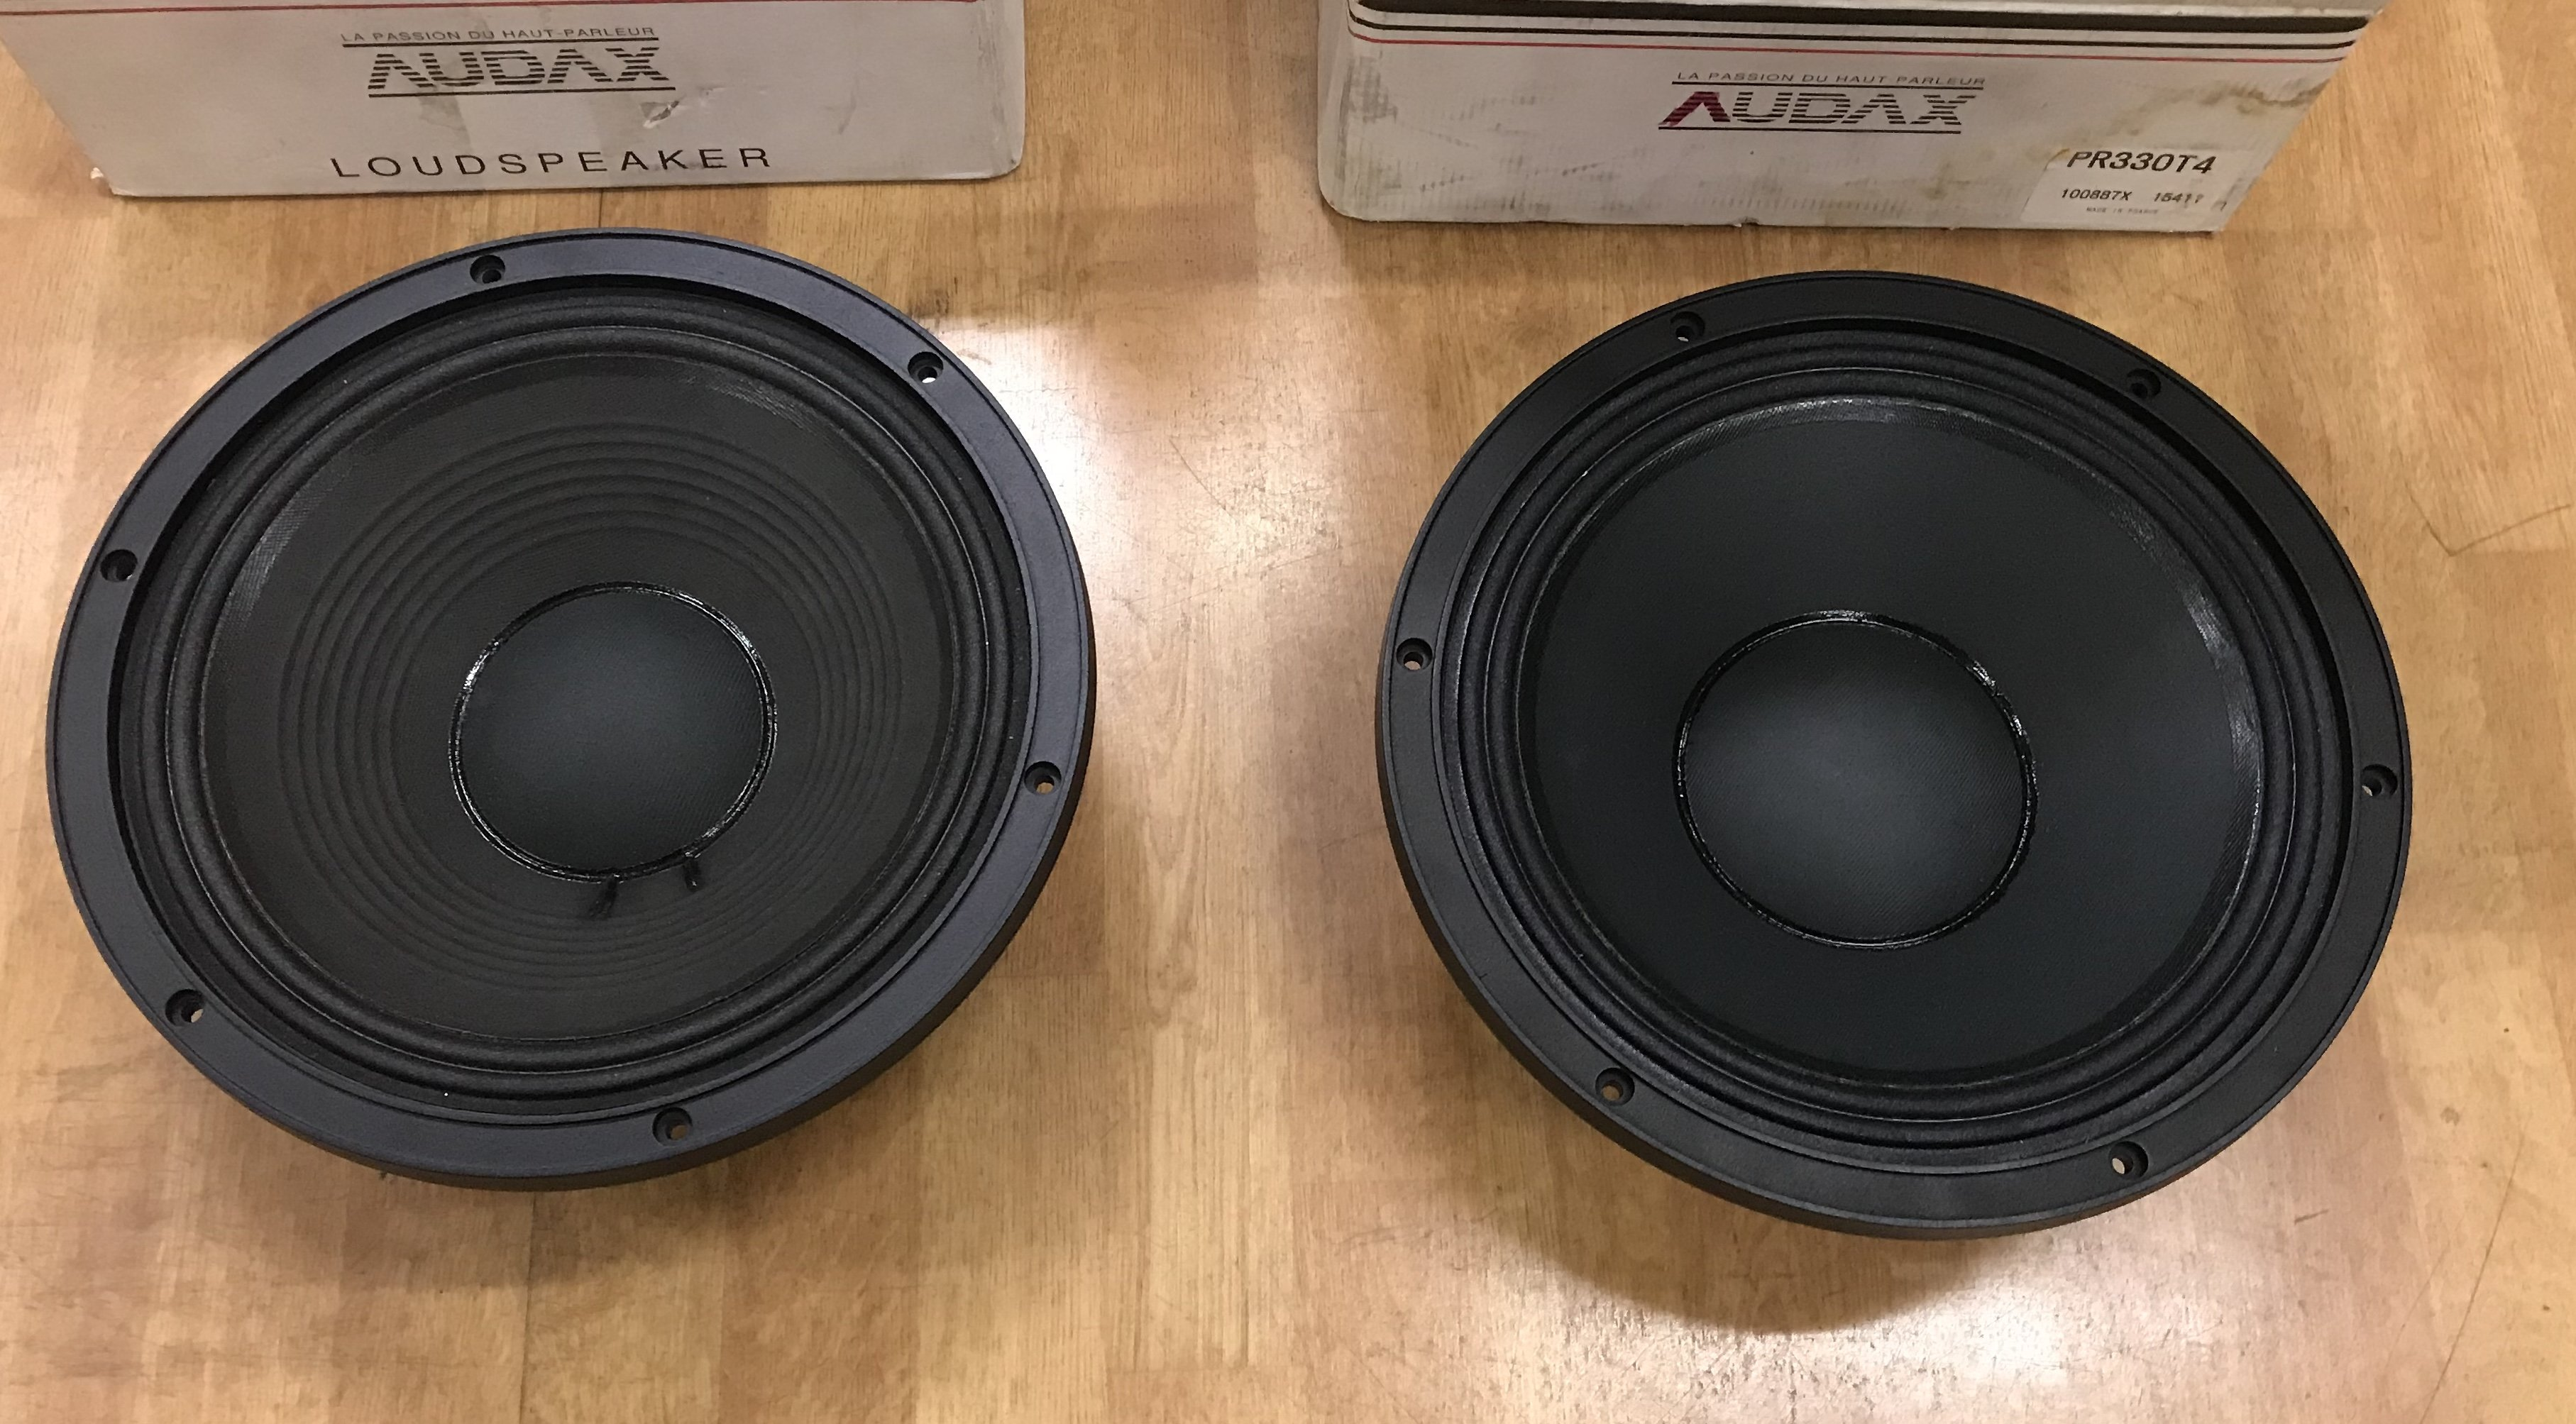 "SOLD: FS: ADL: Two Audax 13"" Pro Mid/woofers"